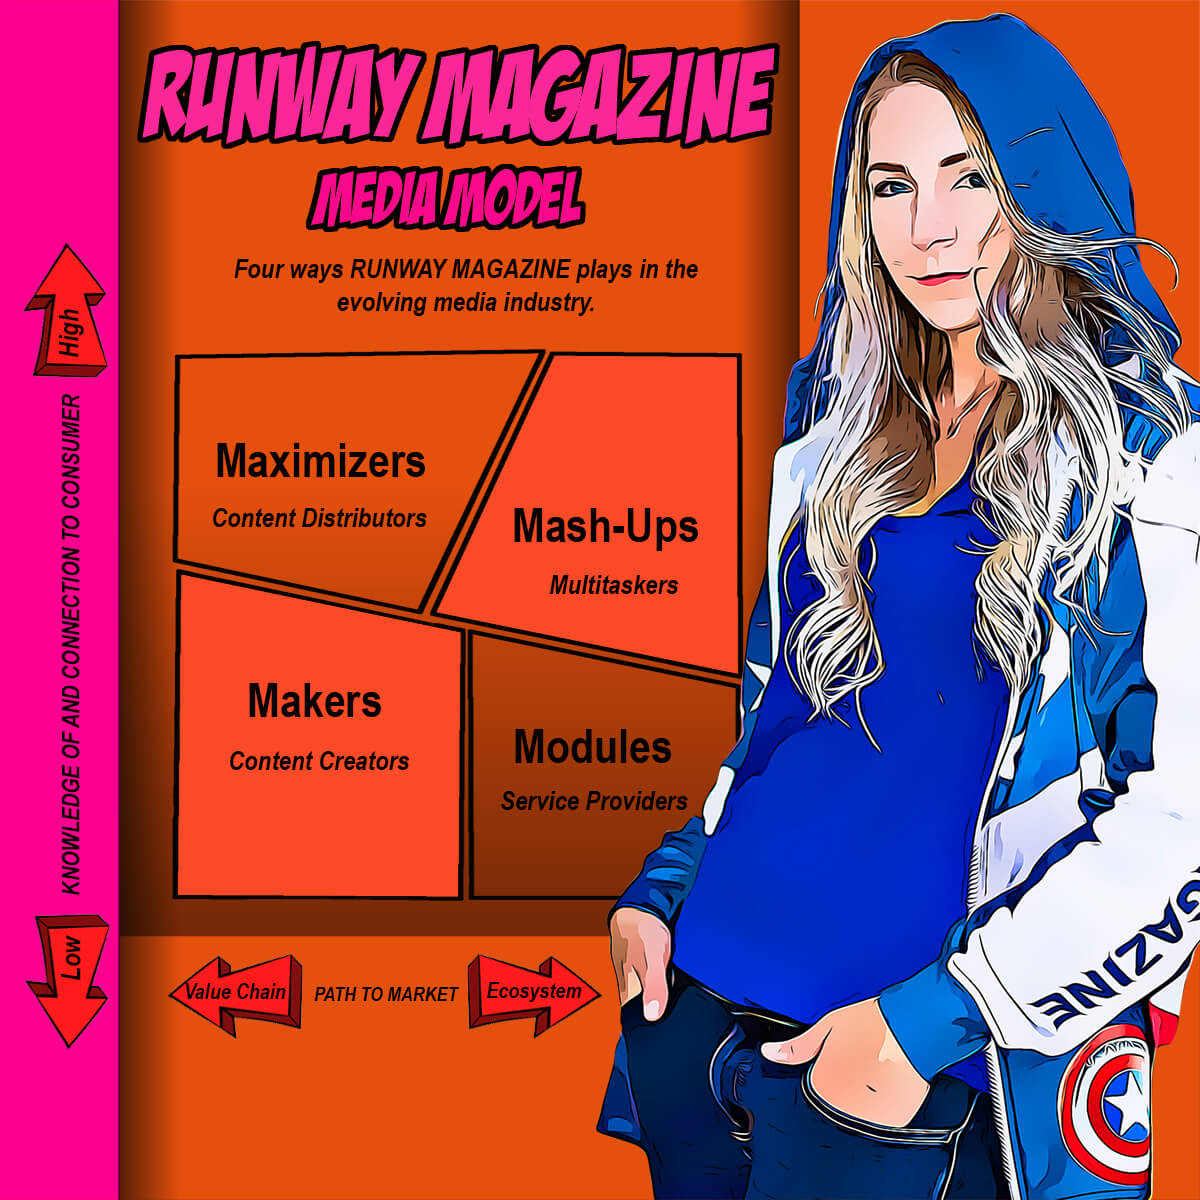 RUNWAY MAGAZINE marketing structure